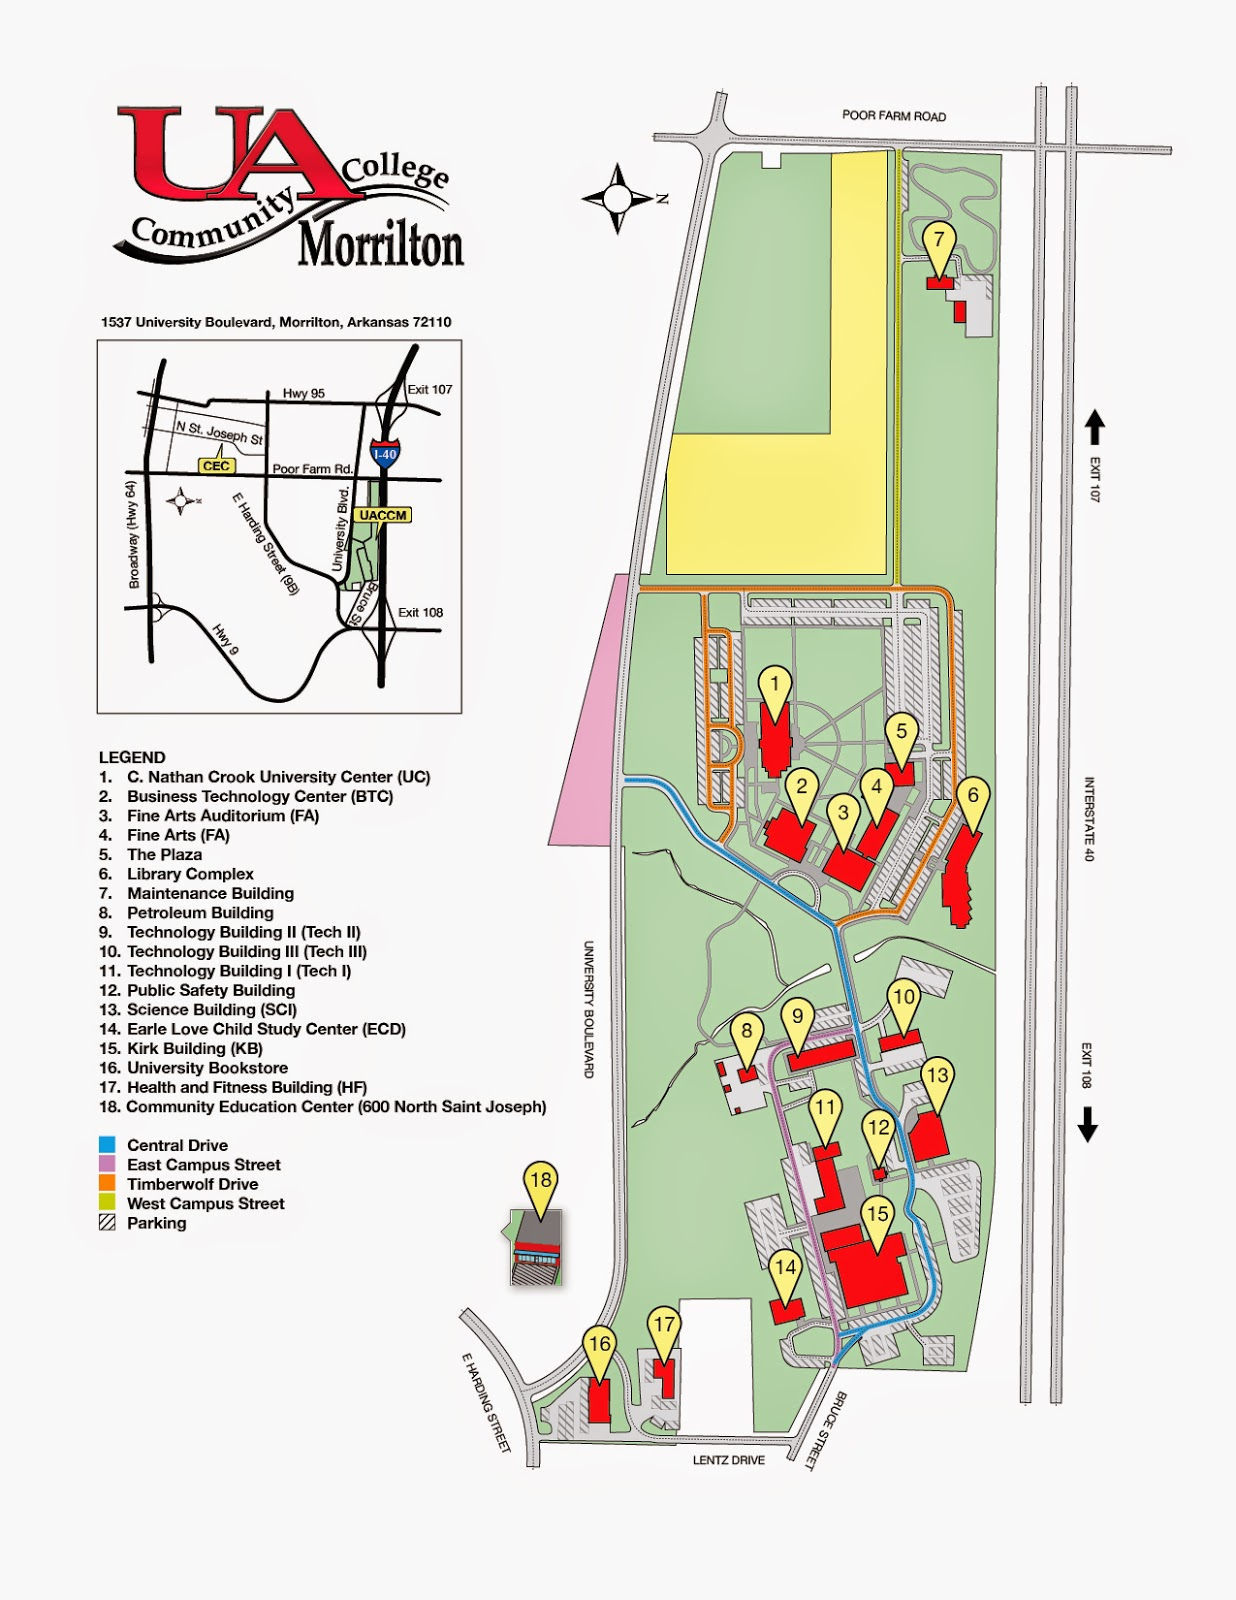 University Of Central Arkansas Campus Map.Uaccm The Campus Link Uaccm Purchased Additional 9 67 Acres For